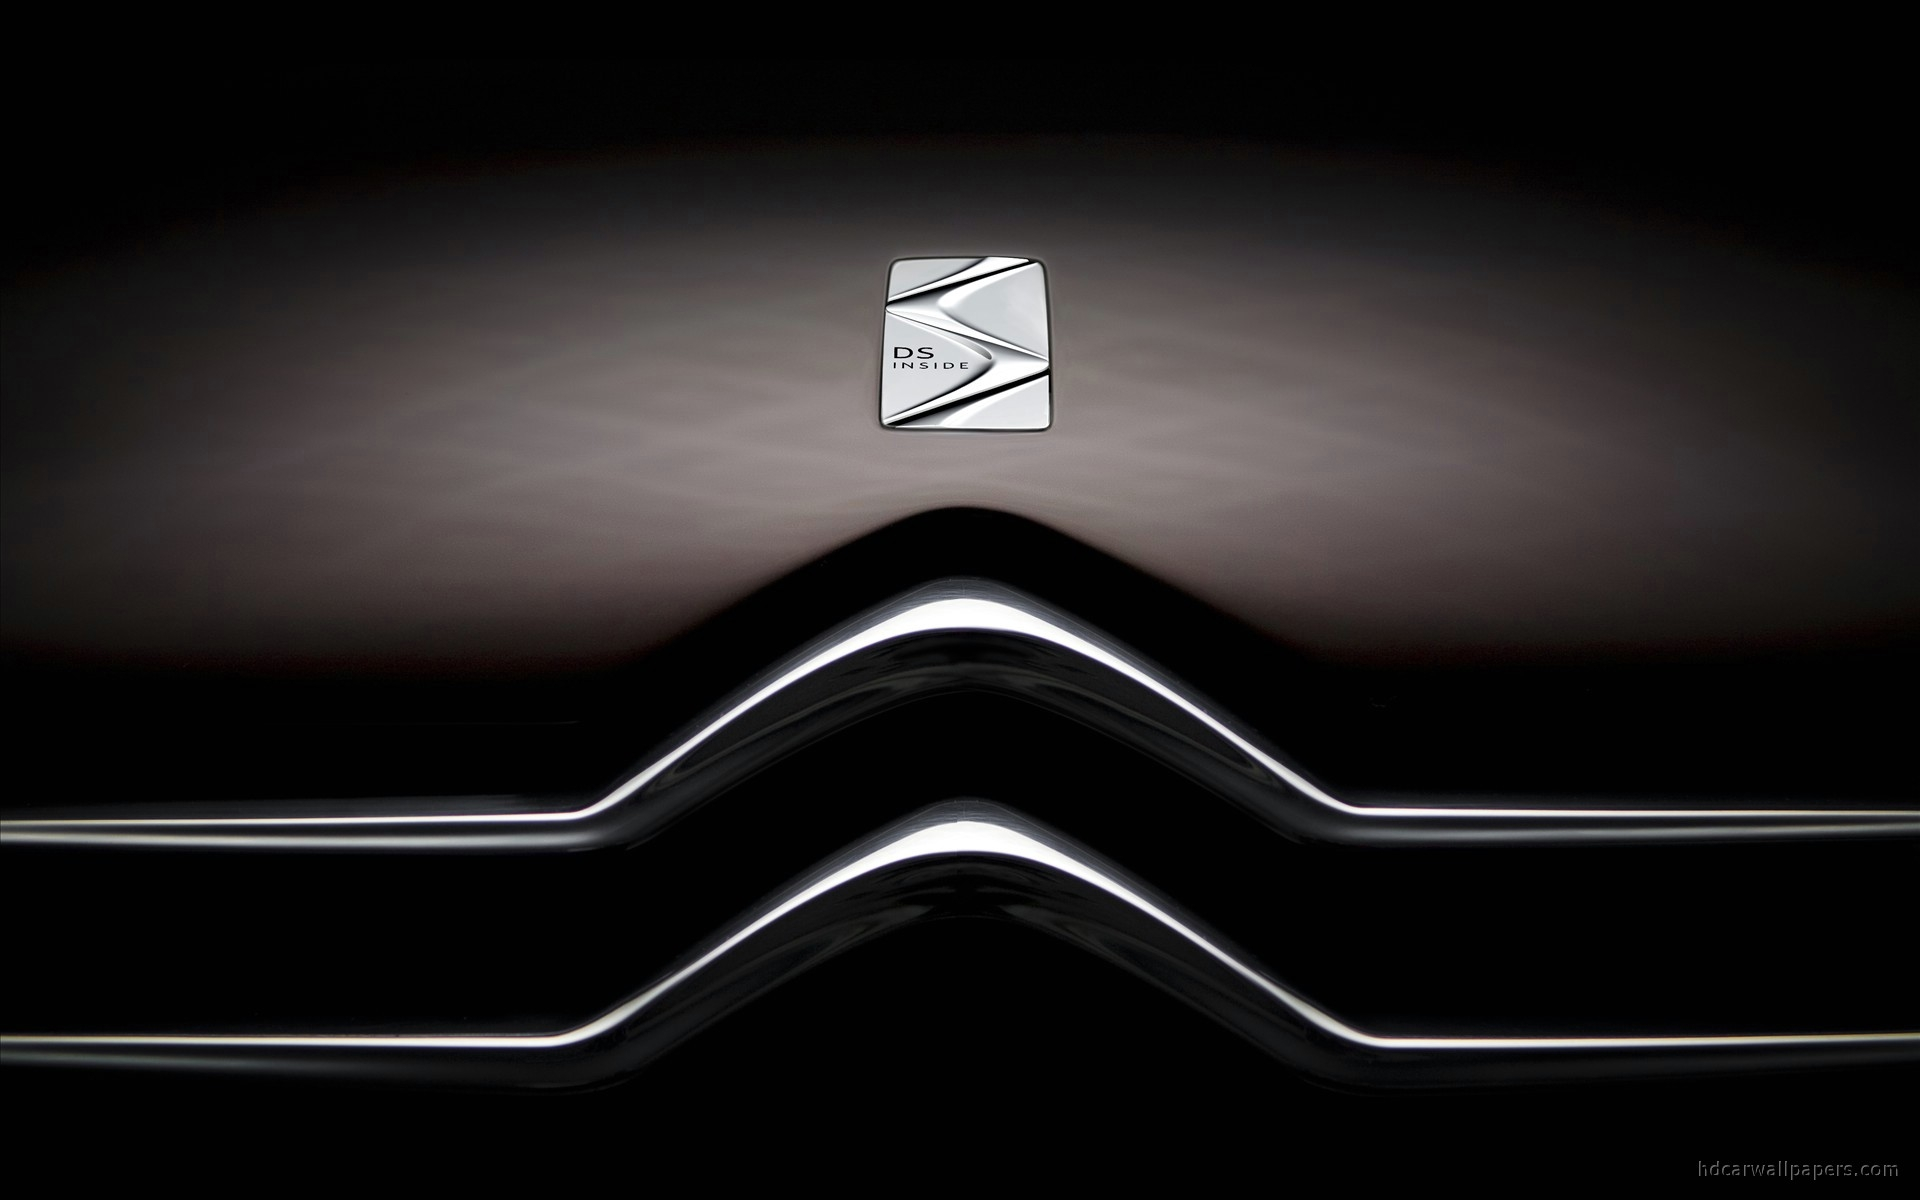 citroen-ds-inside-logo-Citroen-Ds-Inside-Logo-Pictures-Car-Hd-intended-for-wallpaper-wp3604092